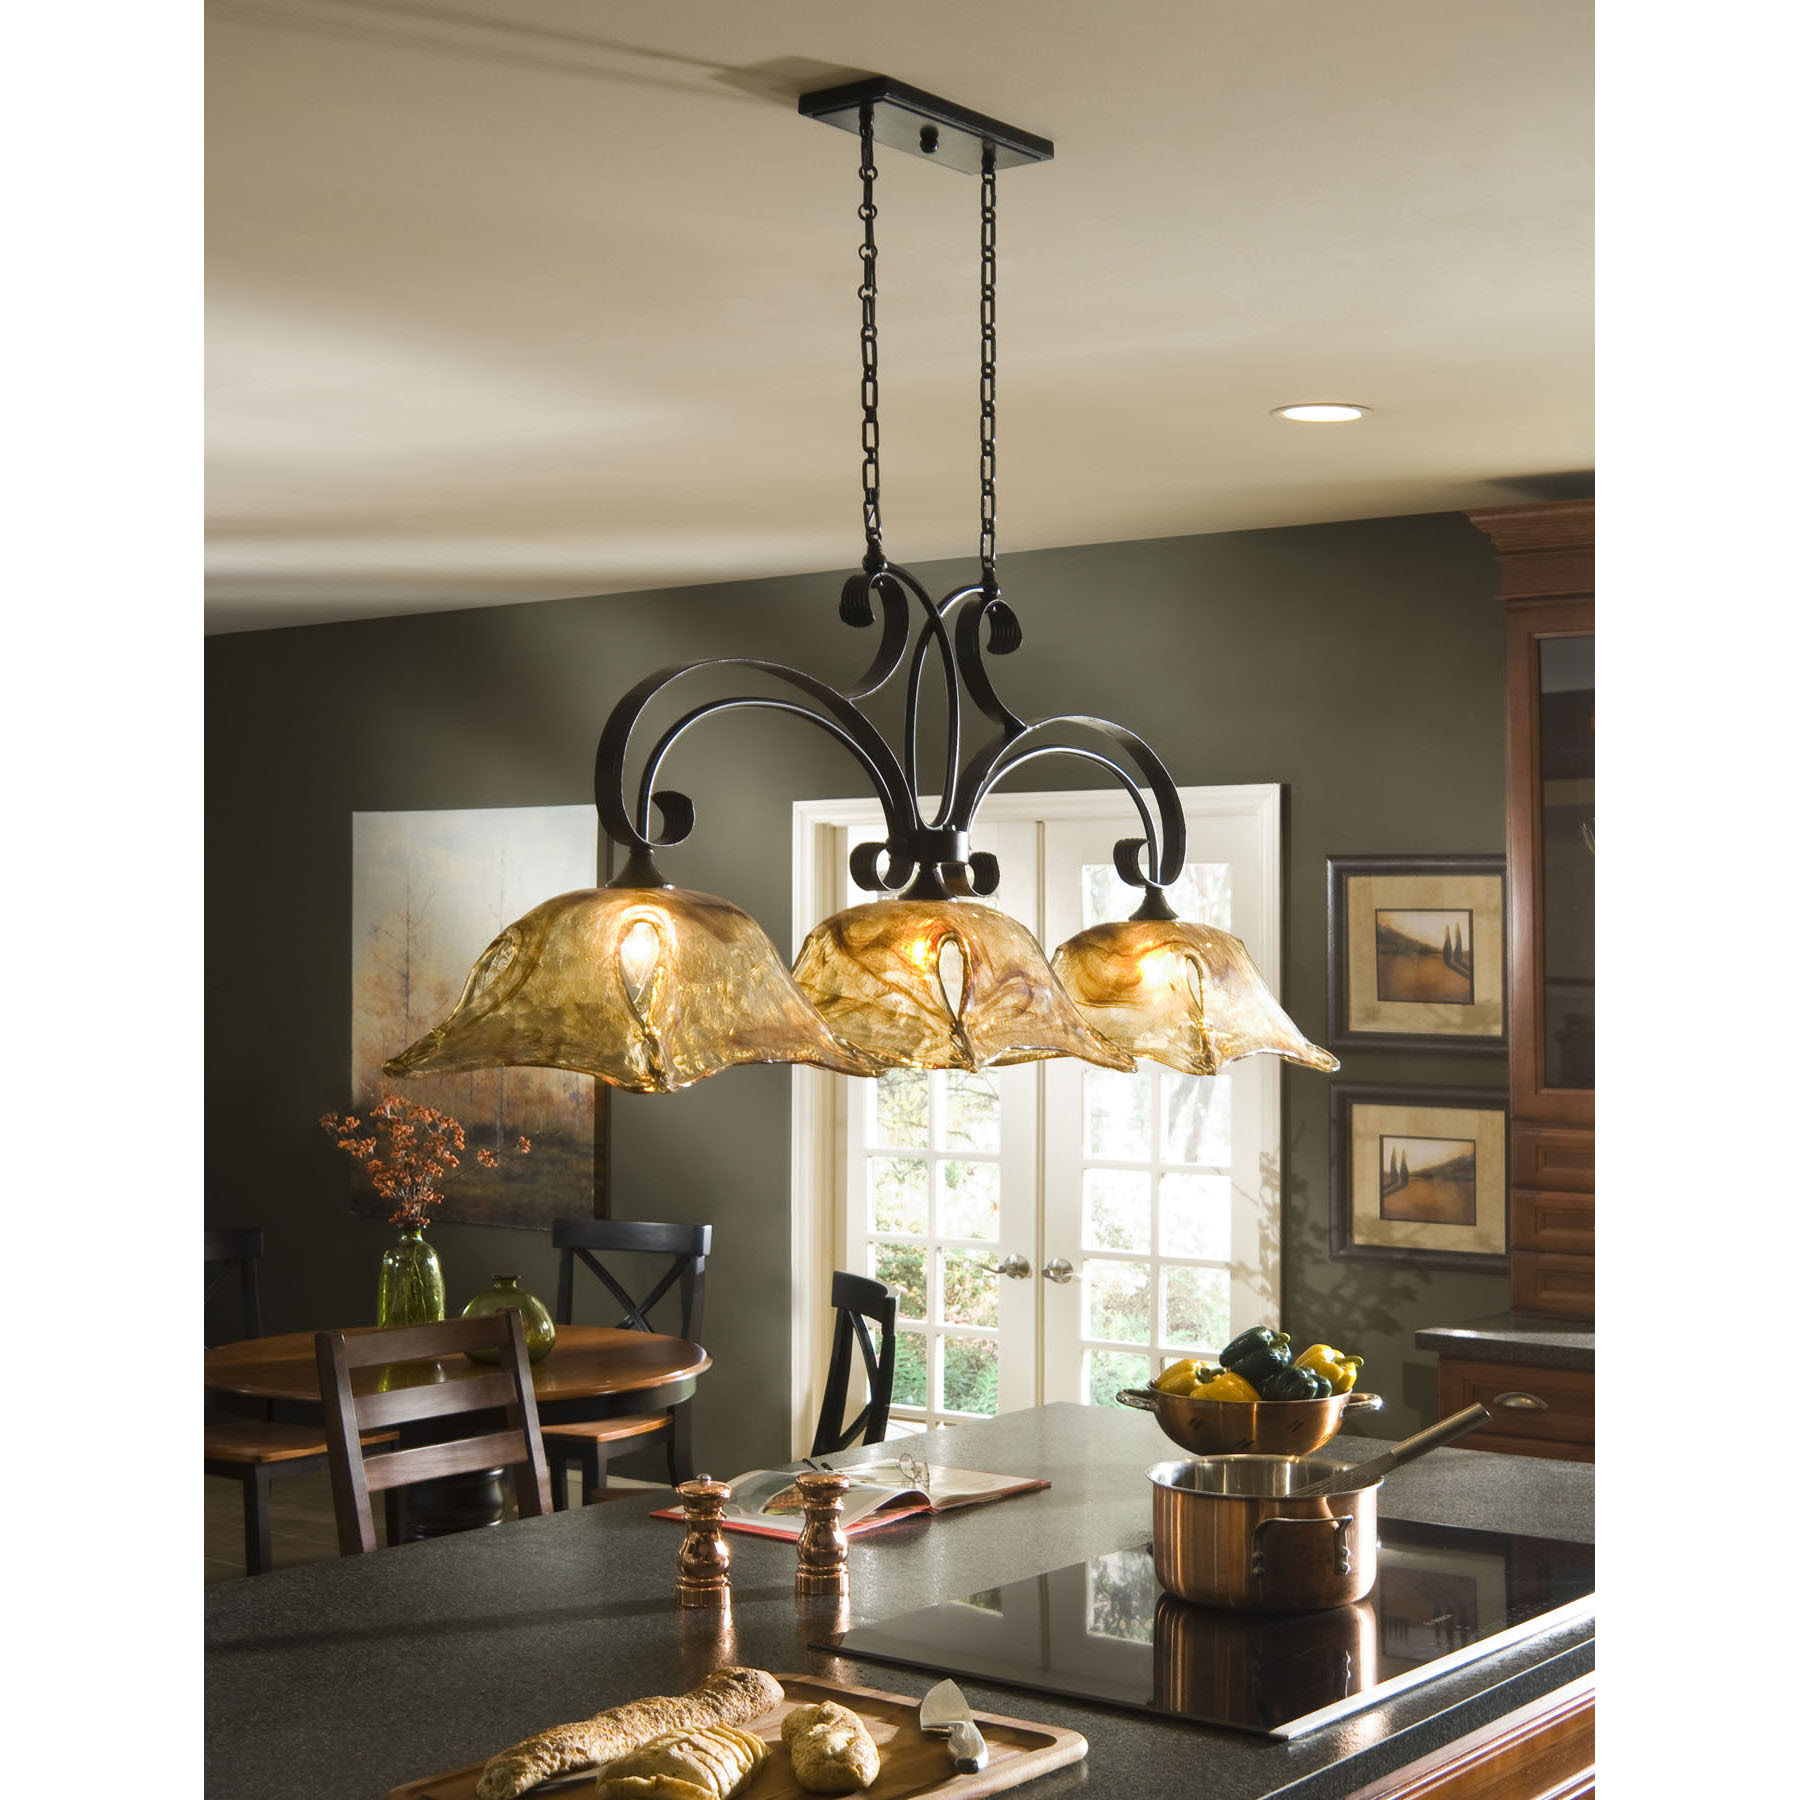 A Tip Sheet on How the Right Lighting Can Make the Kitchen Come Alive is Introduced by